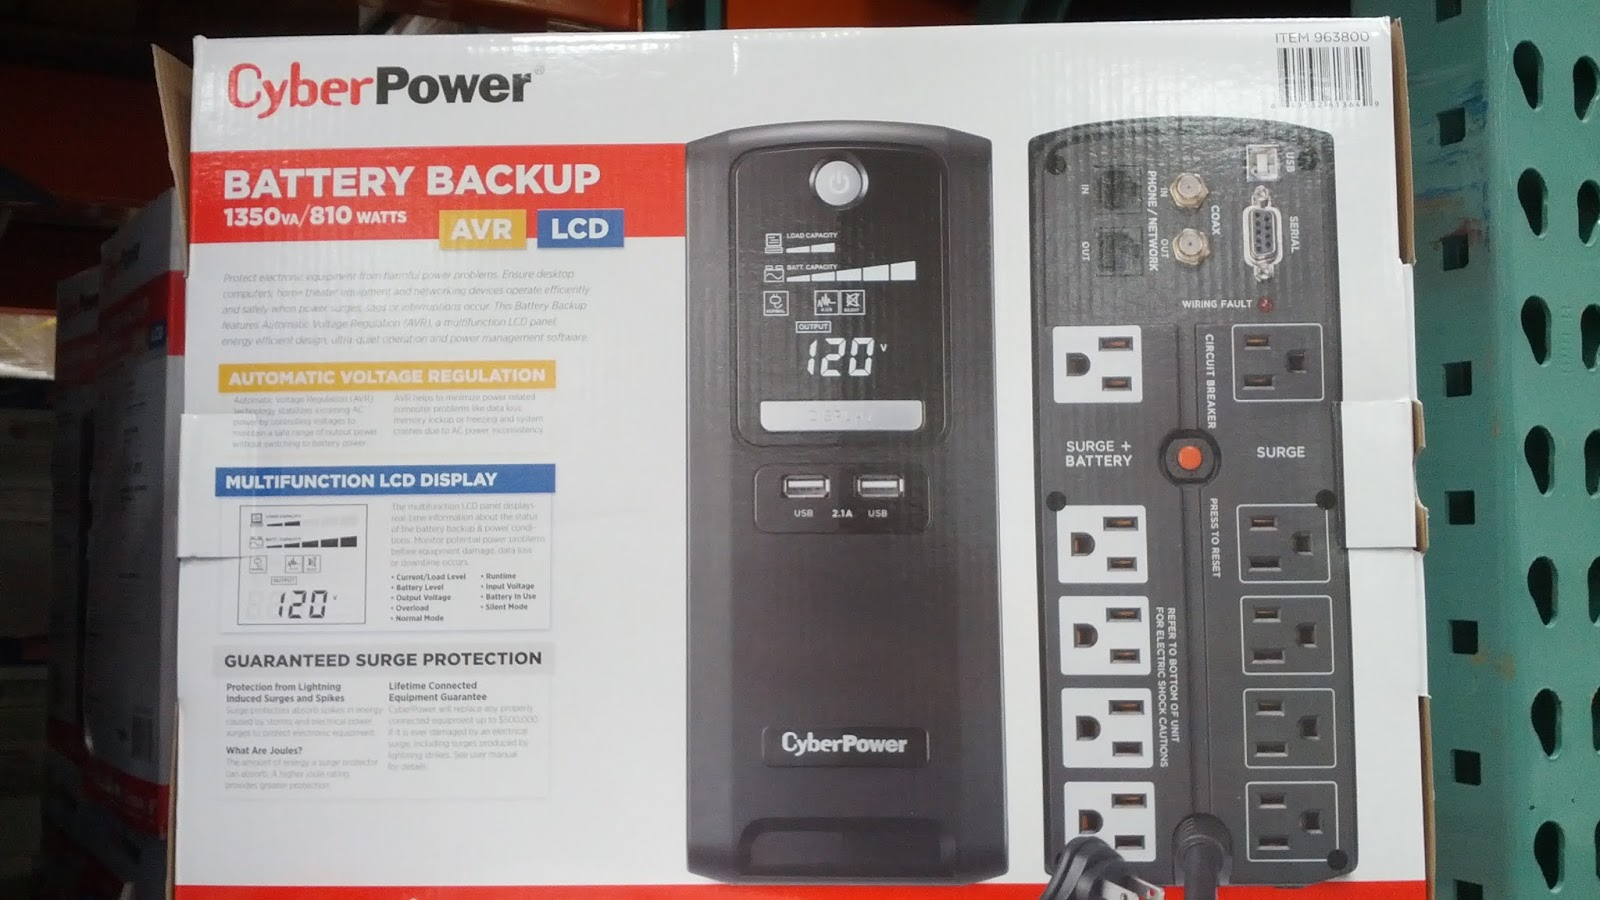 Cyberpower CST135XLU Battery Backup | Costco Weekender